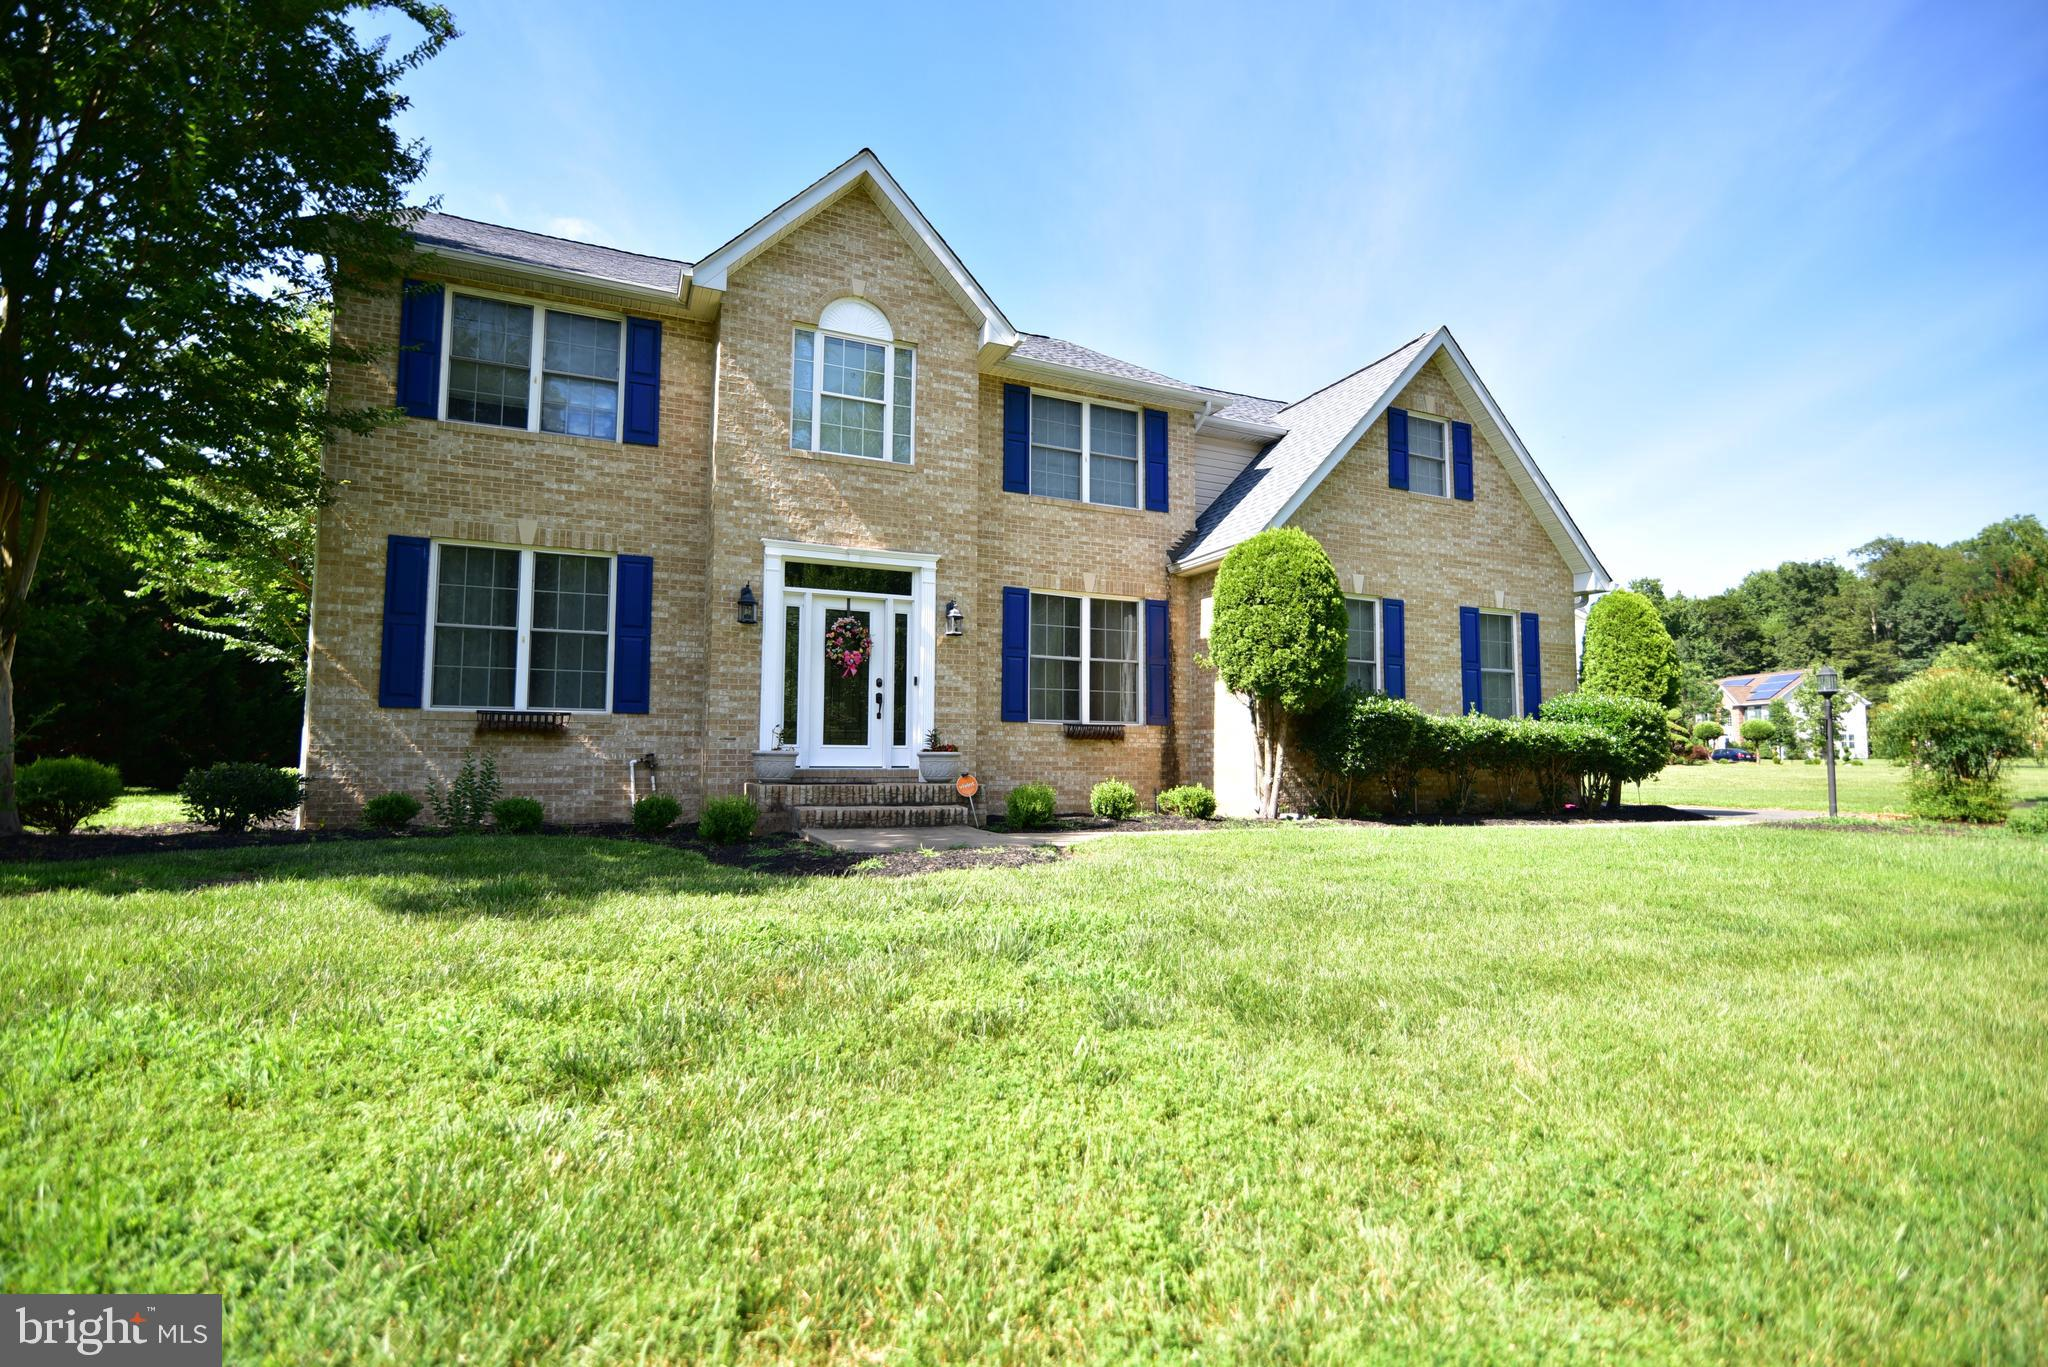 6415 HARD BARGAIN Cir, Indian Head, MD, 20640